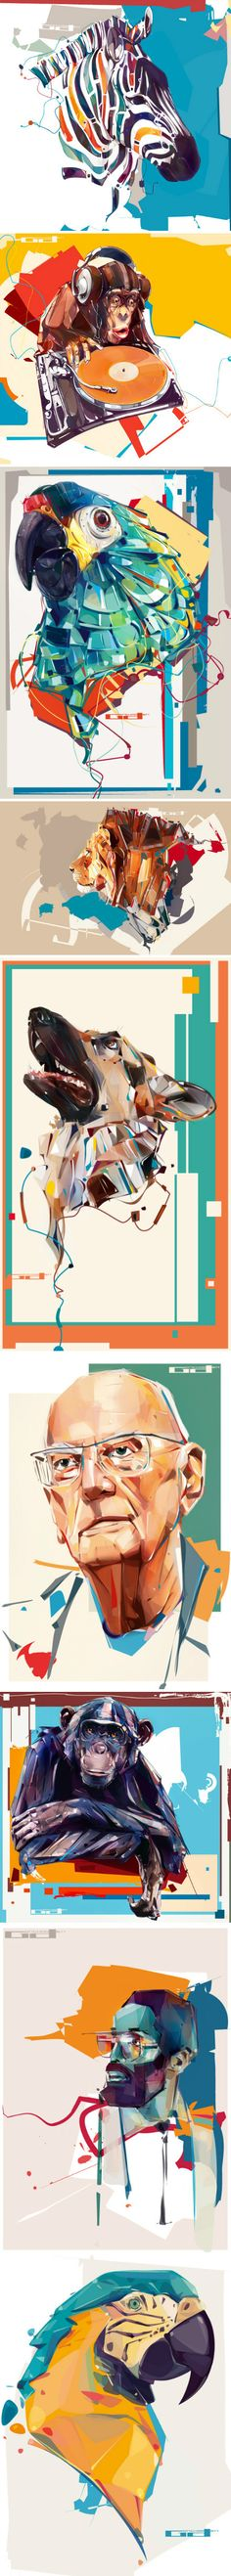 Great illustrations! Love it. #illustration #art ★ Find more at http://www.pinterest.com/competing/